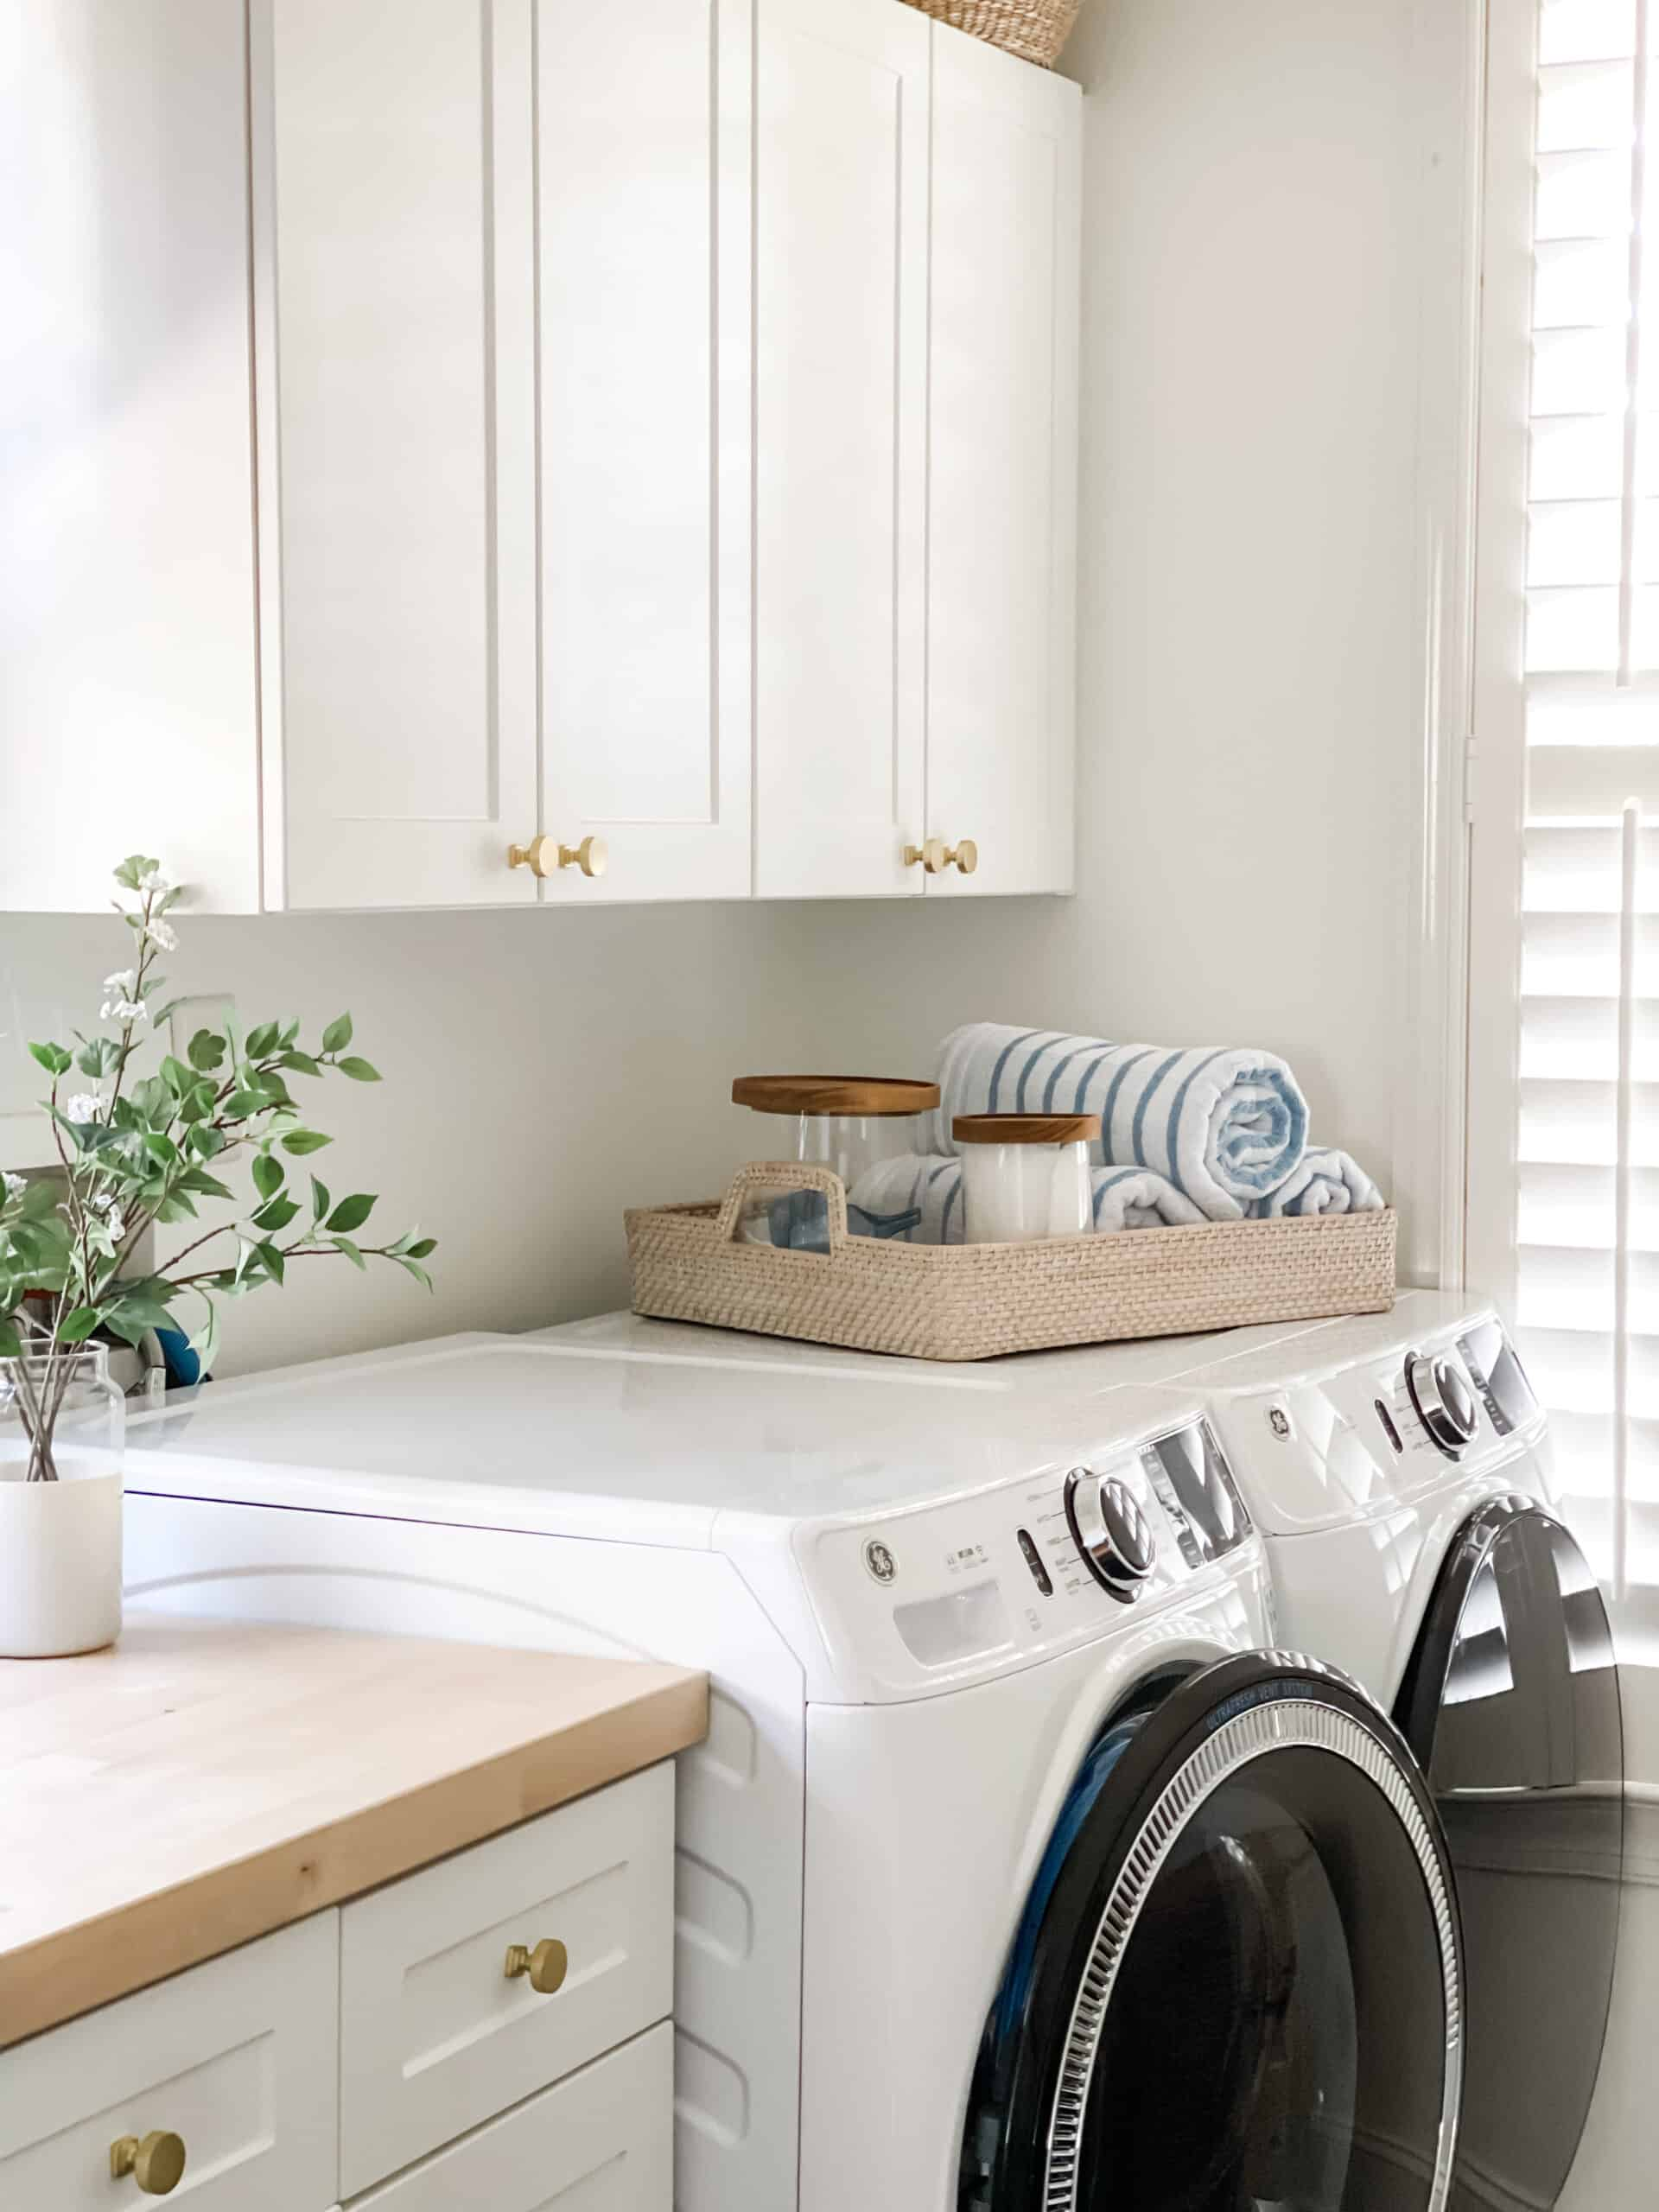 Laundry room inspiration with white front loader washer and dryer.